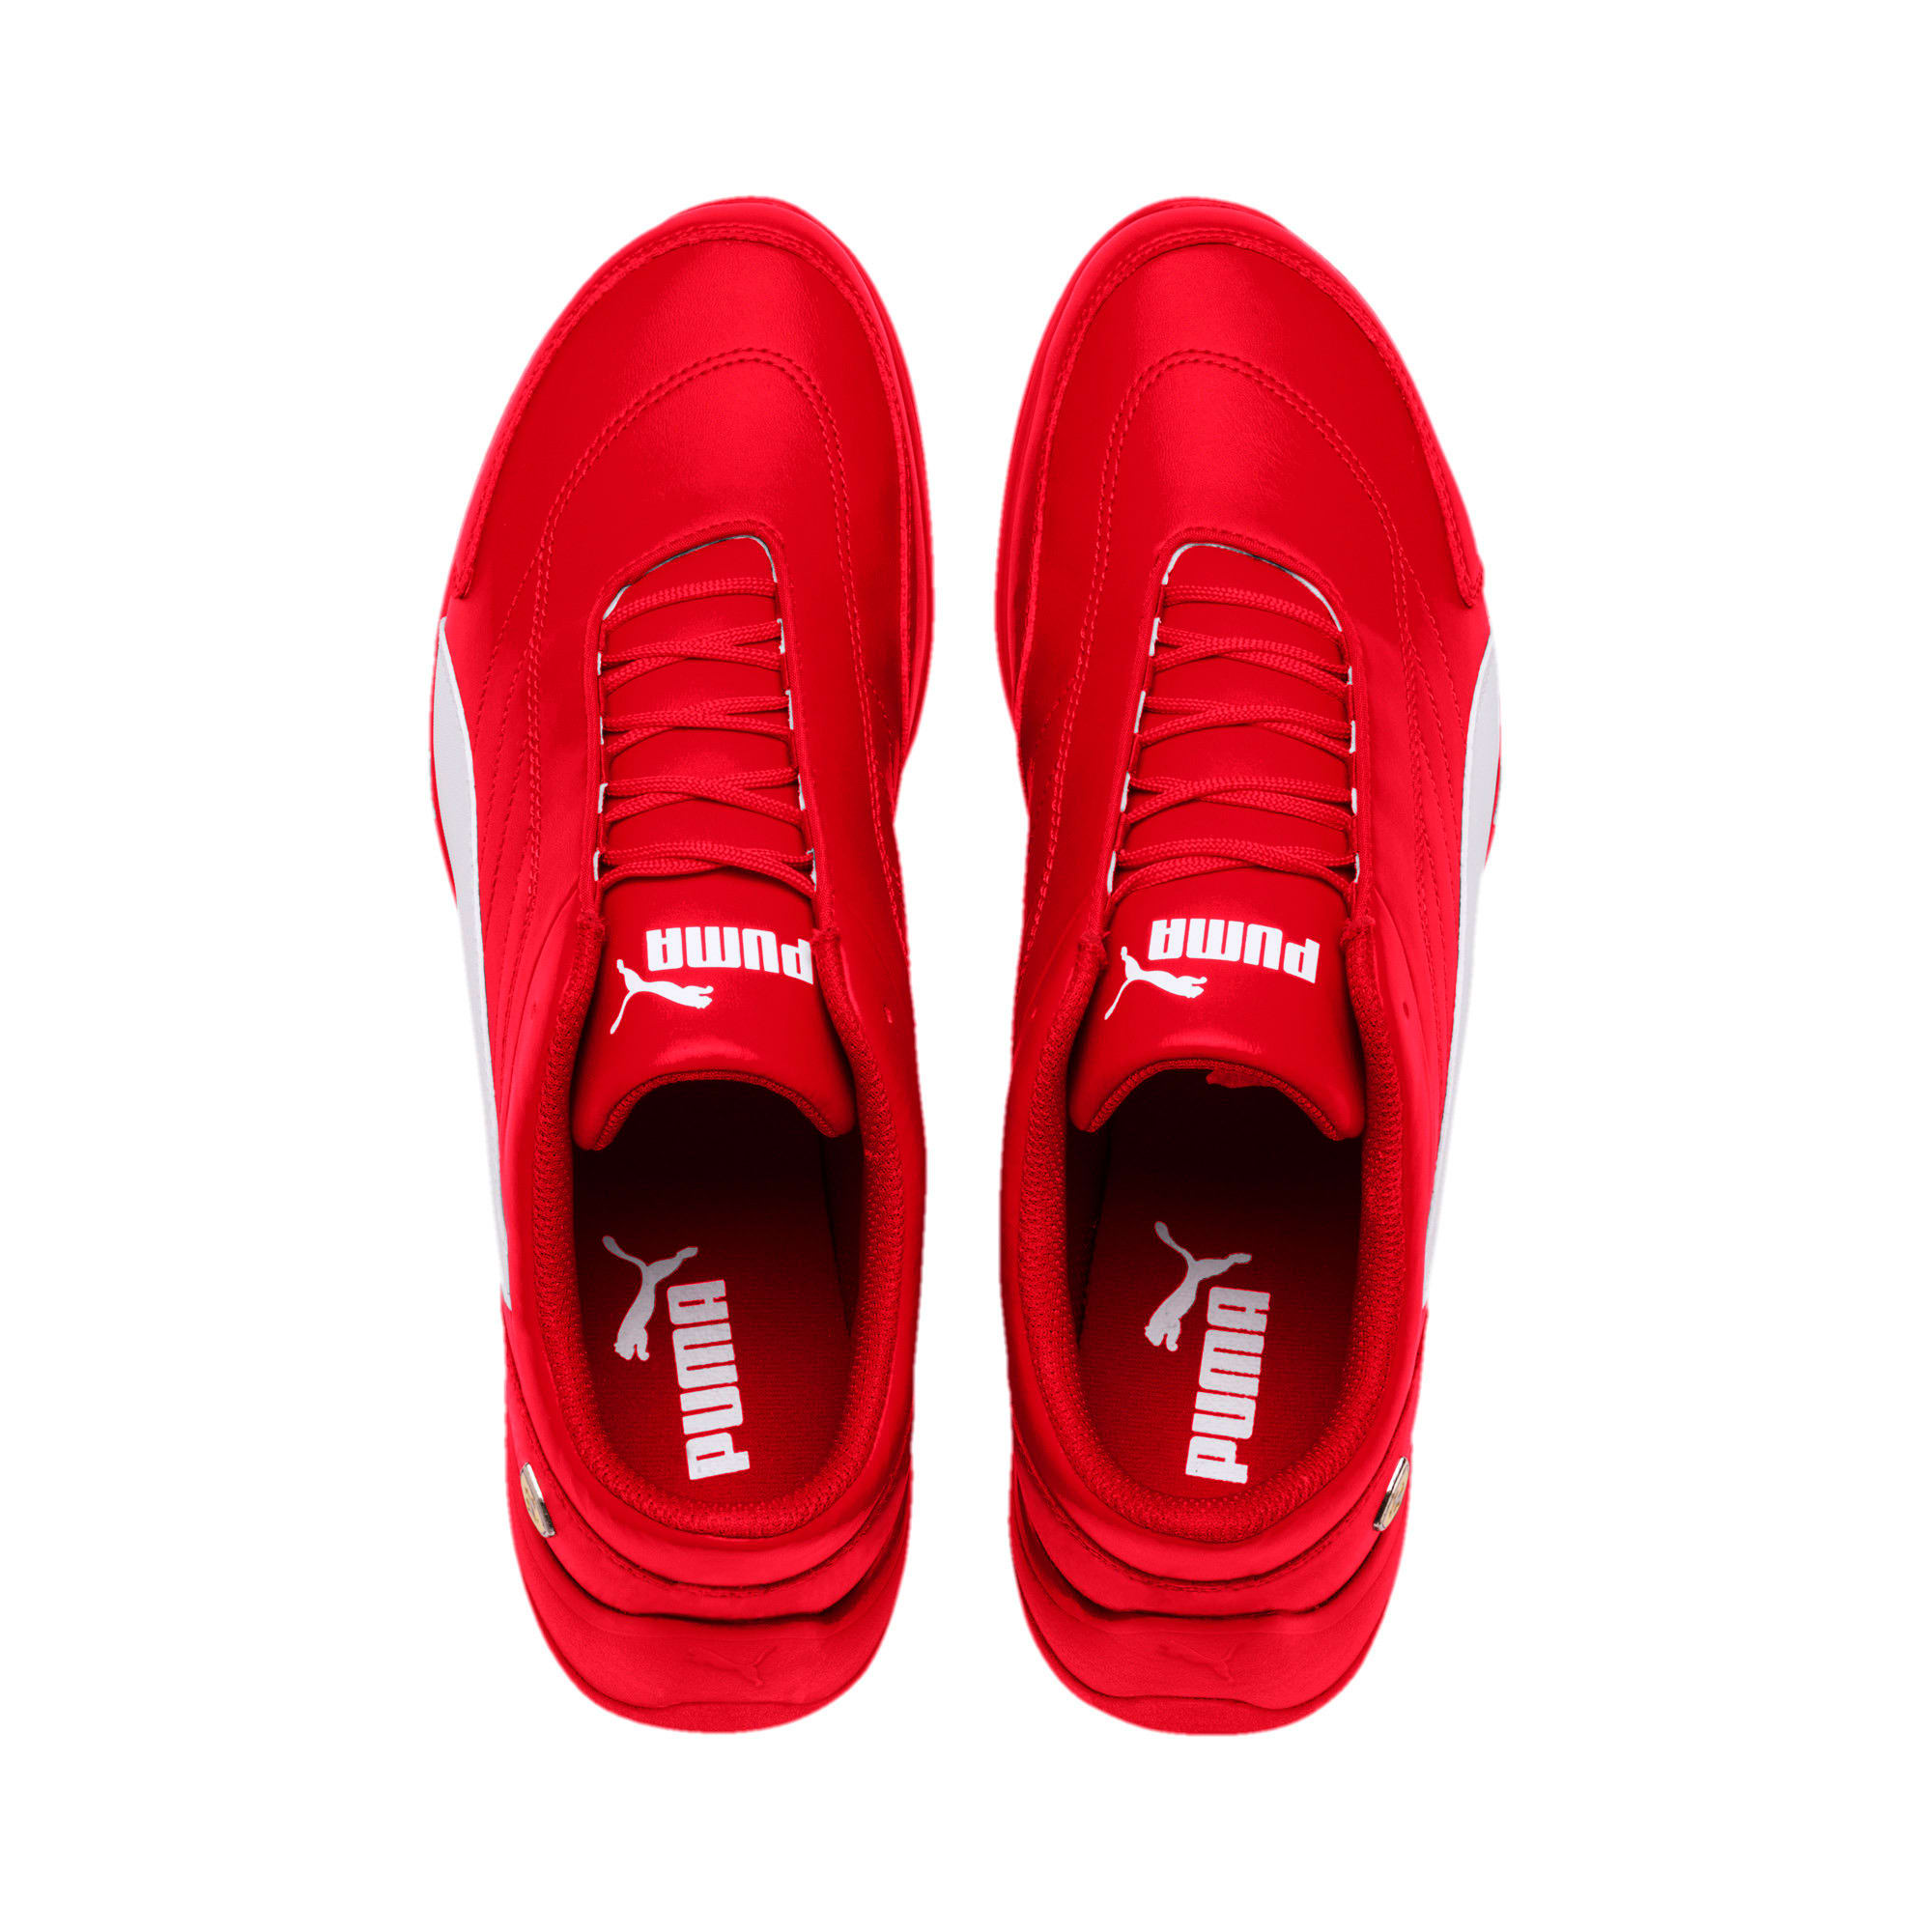 Thumbnail 7 of Scuderia Ferrari Kart Cat III Shoes, Rosso Corsa-White, medium